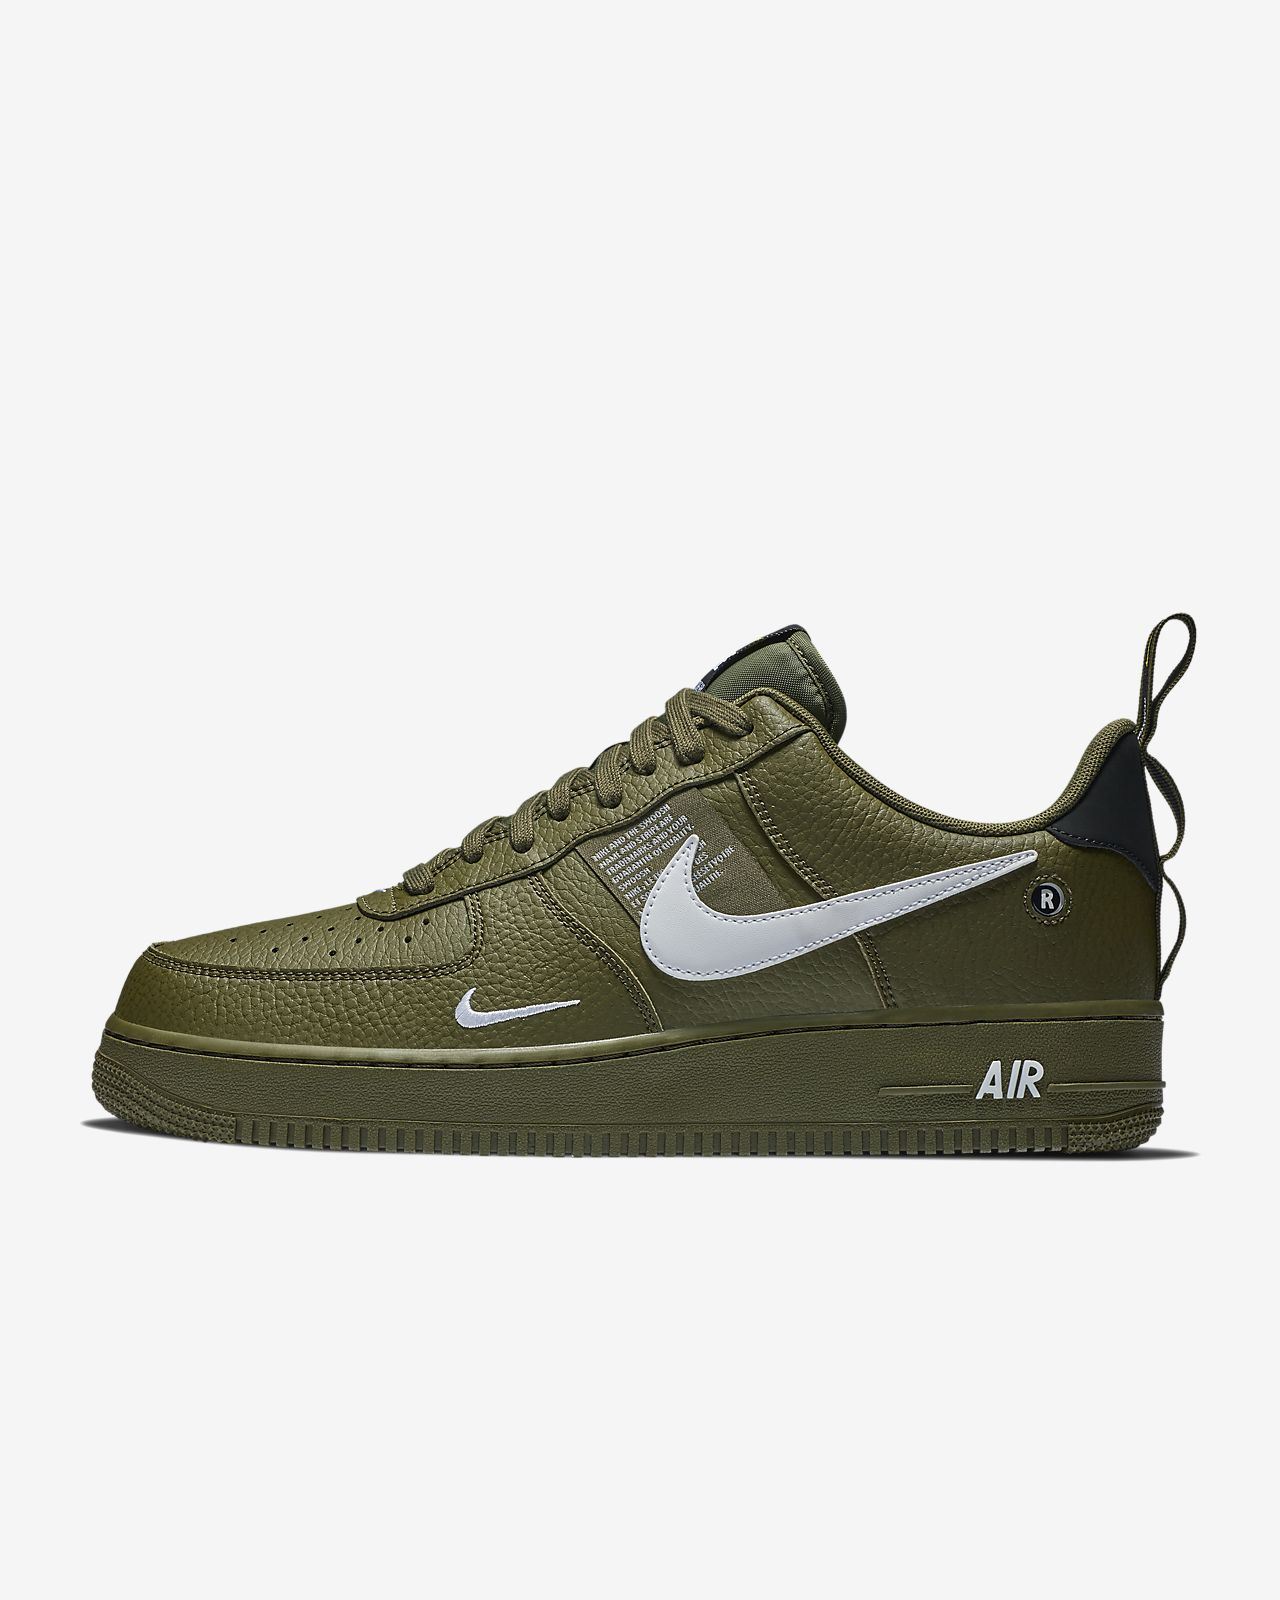 Chaussure Utility Be Pour Homme Force '07 Lv8 Air 1 Nike wrzx6Yqr